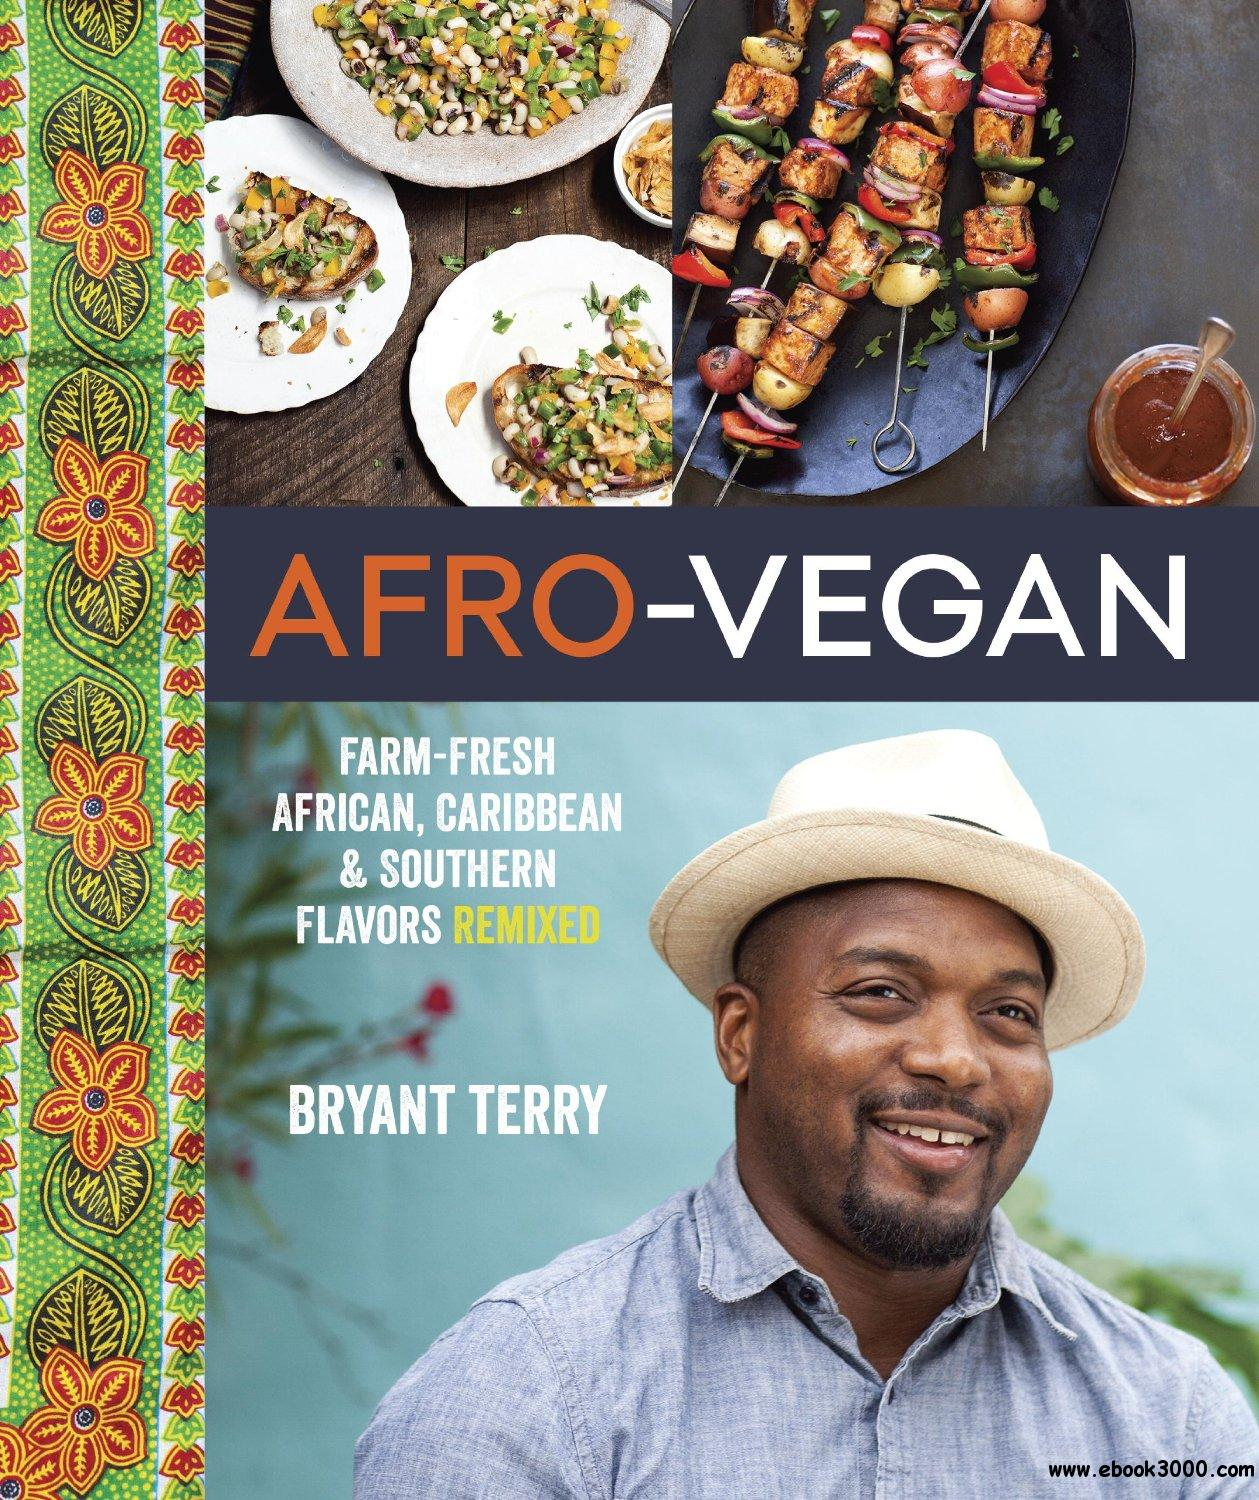 Afro-Vegan: Farm-Fresh African, Caribbean, and Southern Flavors Remixed free download